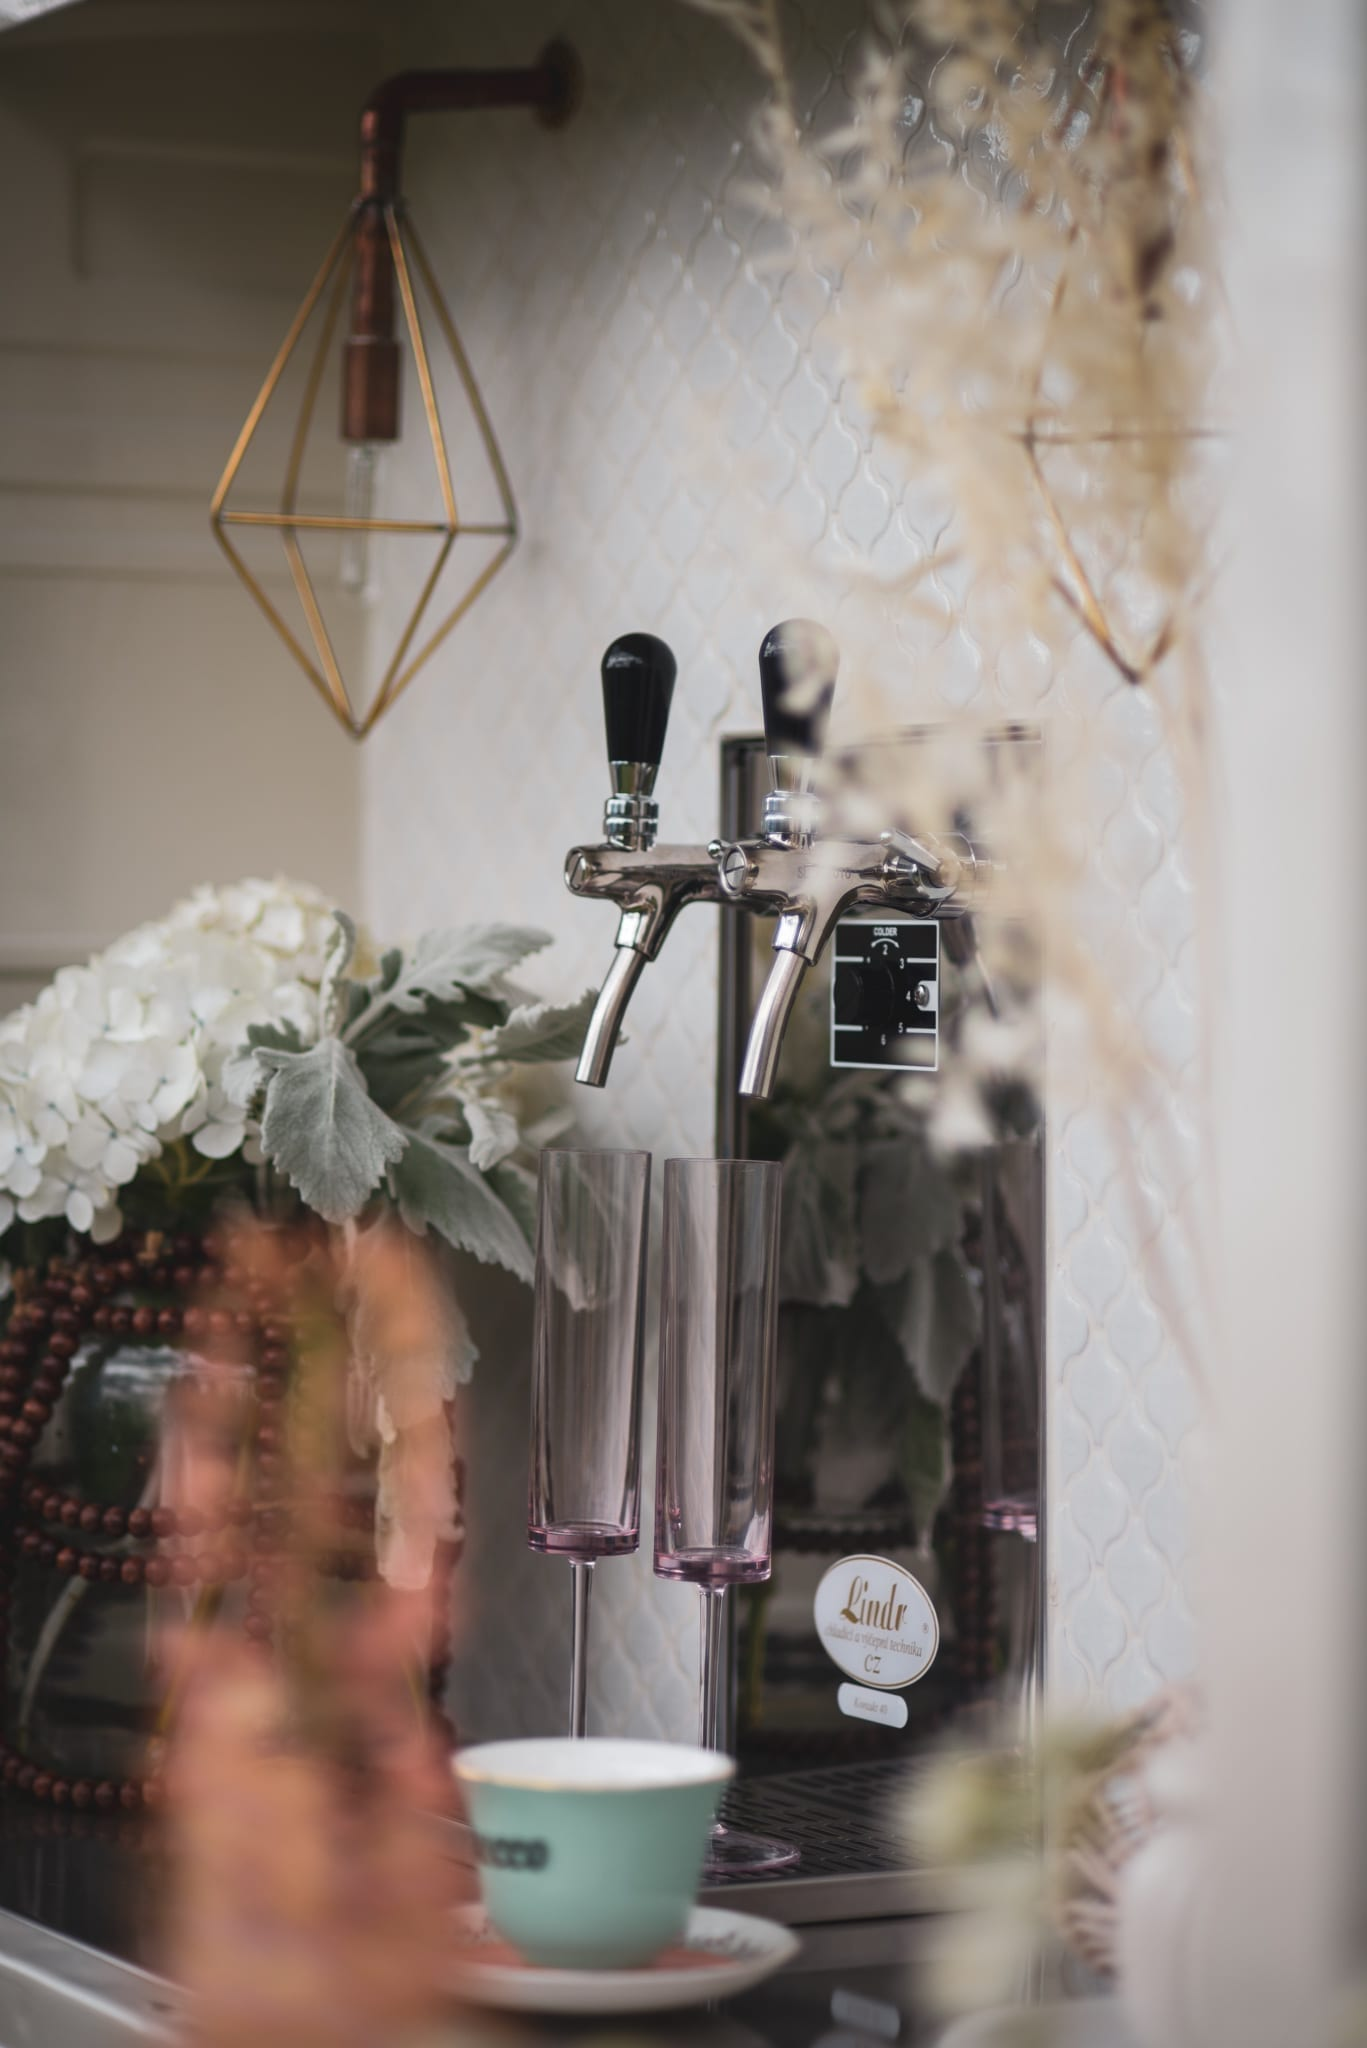 Close Up of Taps on Bubbles and Brews Prosecco Cart